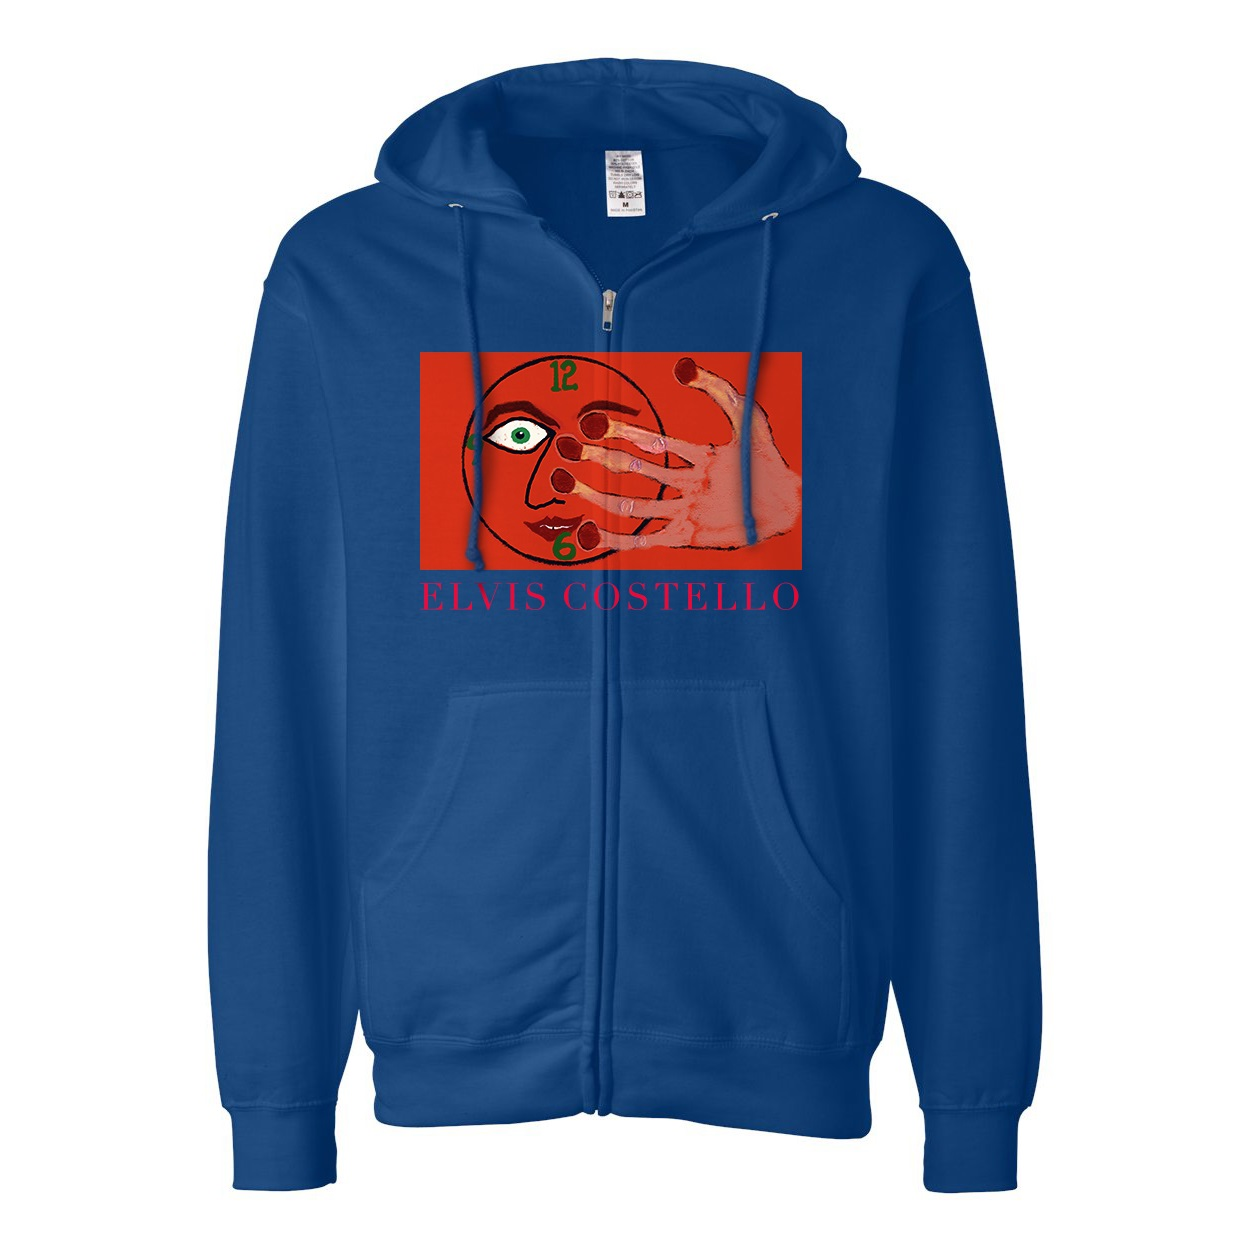 Hey Clockface royal blue zipped hoodie + 2xLP vinyl/CD/download (optional)